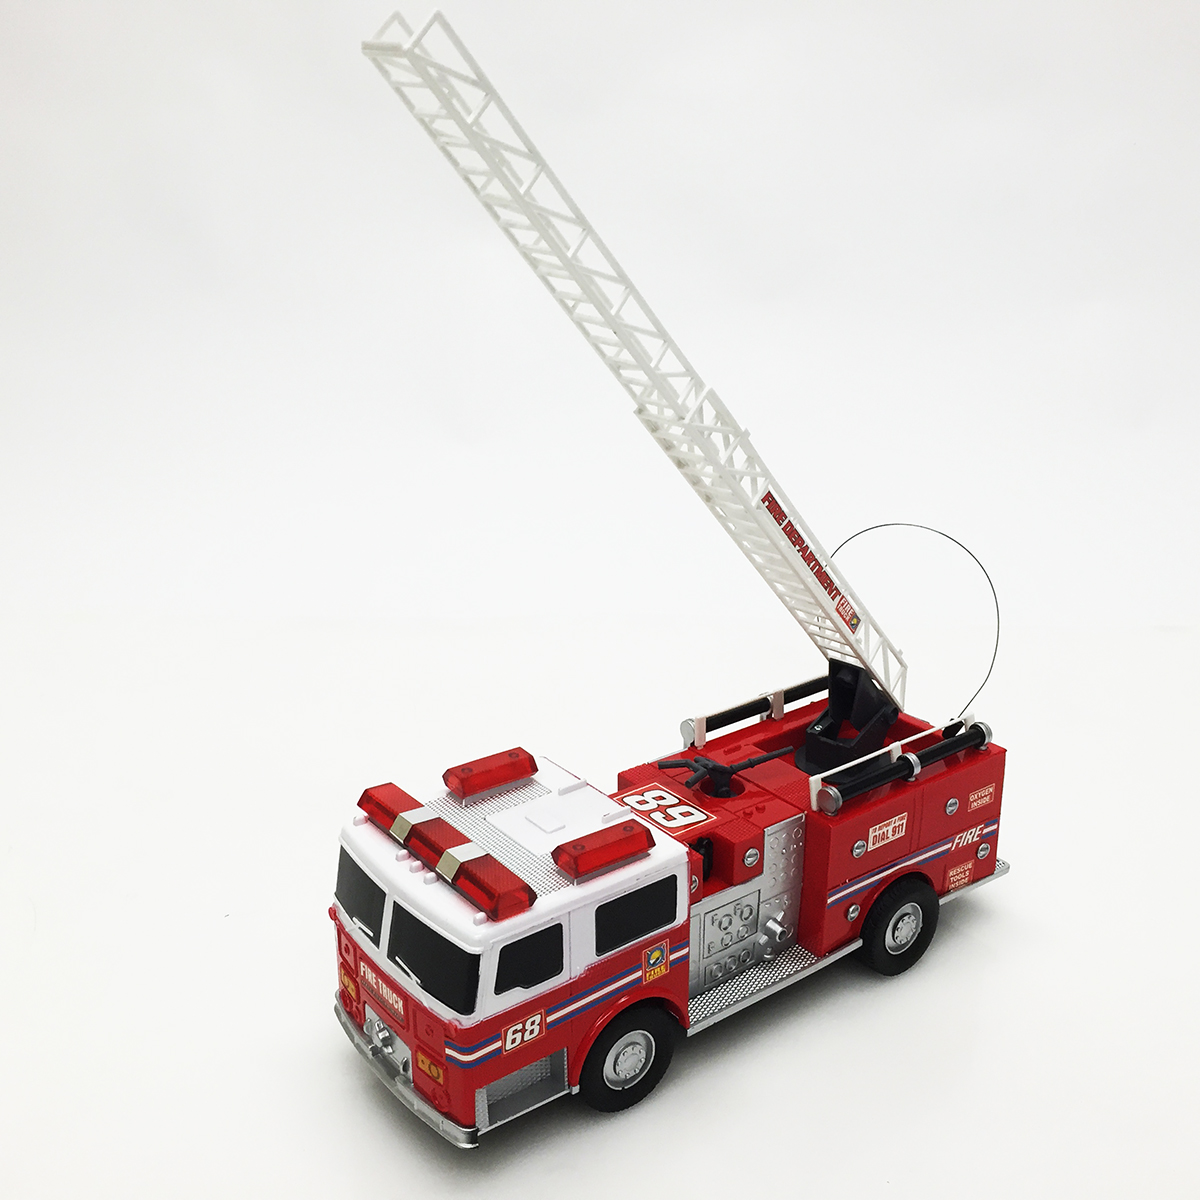 Toy FireTruck RC Remote Control Radio Red Paint Crane Full ...